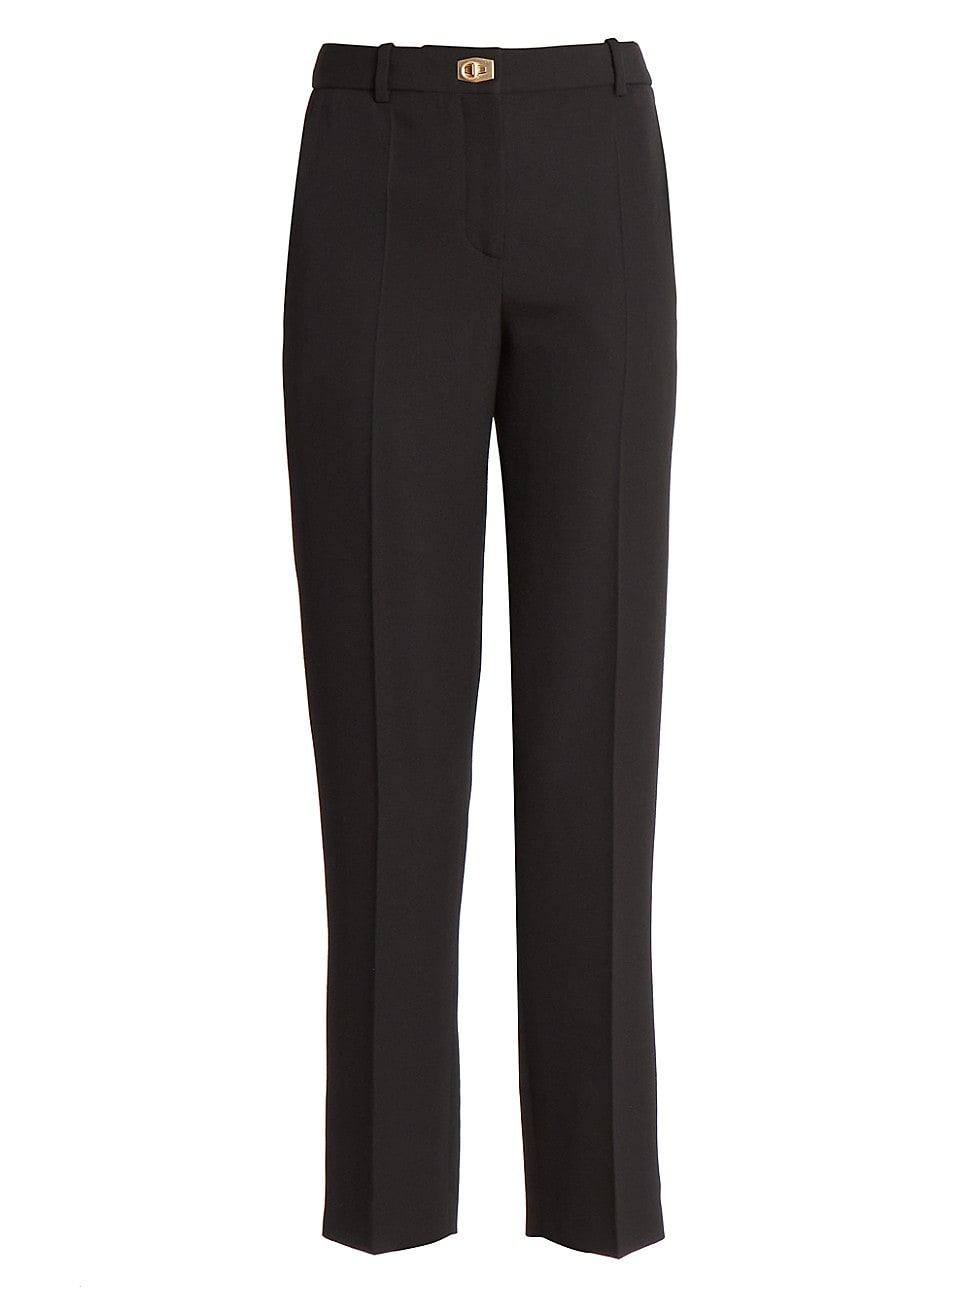 Givenchy Women's Wool Cigarette Trousers In Black